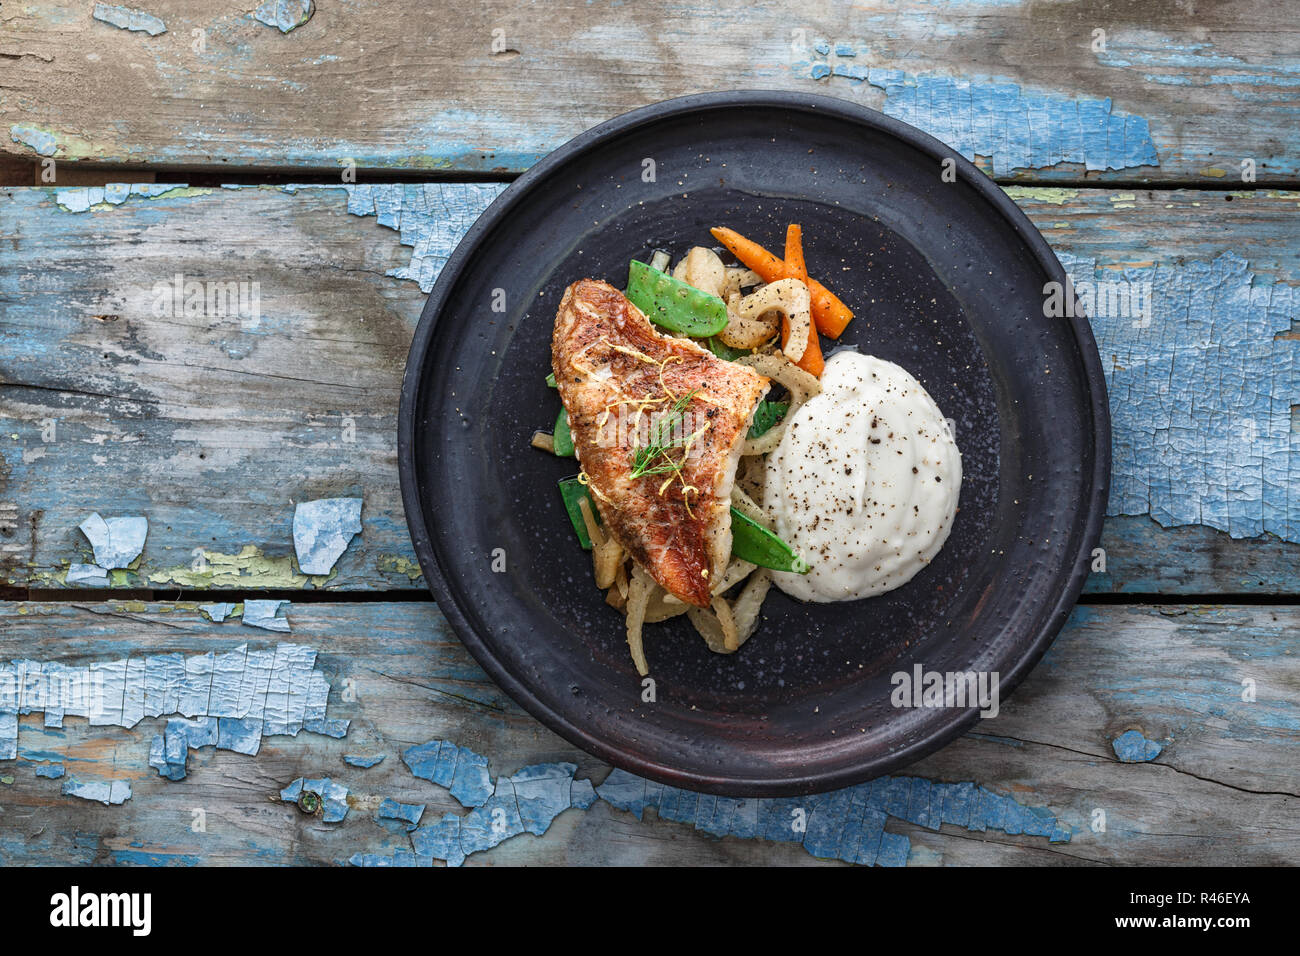 Pan fried ocean perch with sauteeed fennel and jerusalem artishoke puree, copy space - Stock Image